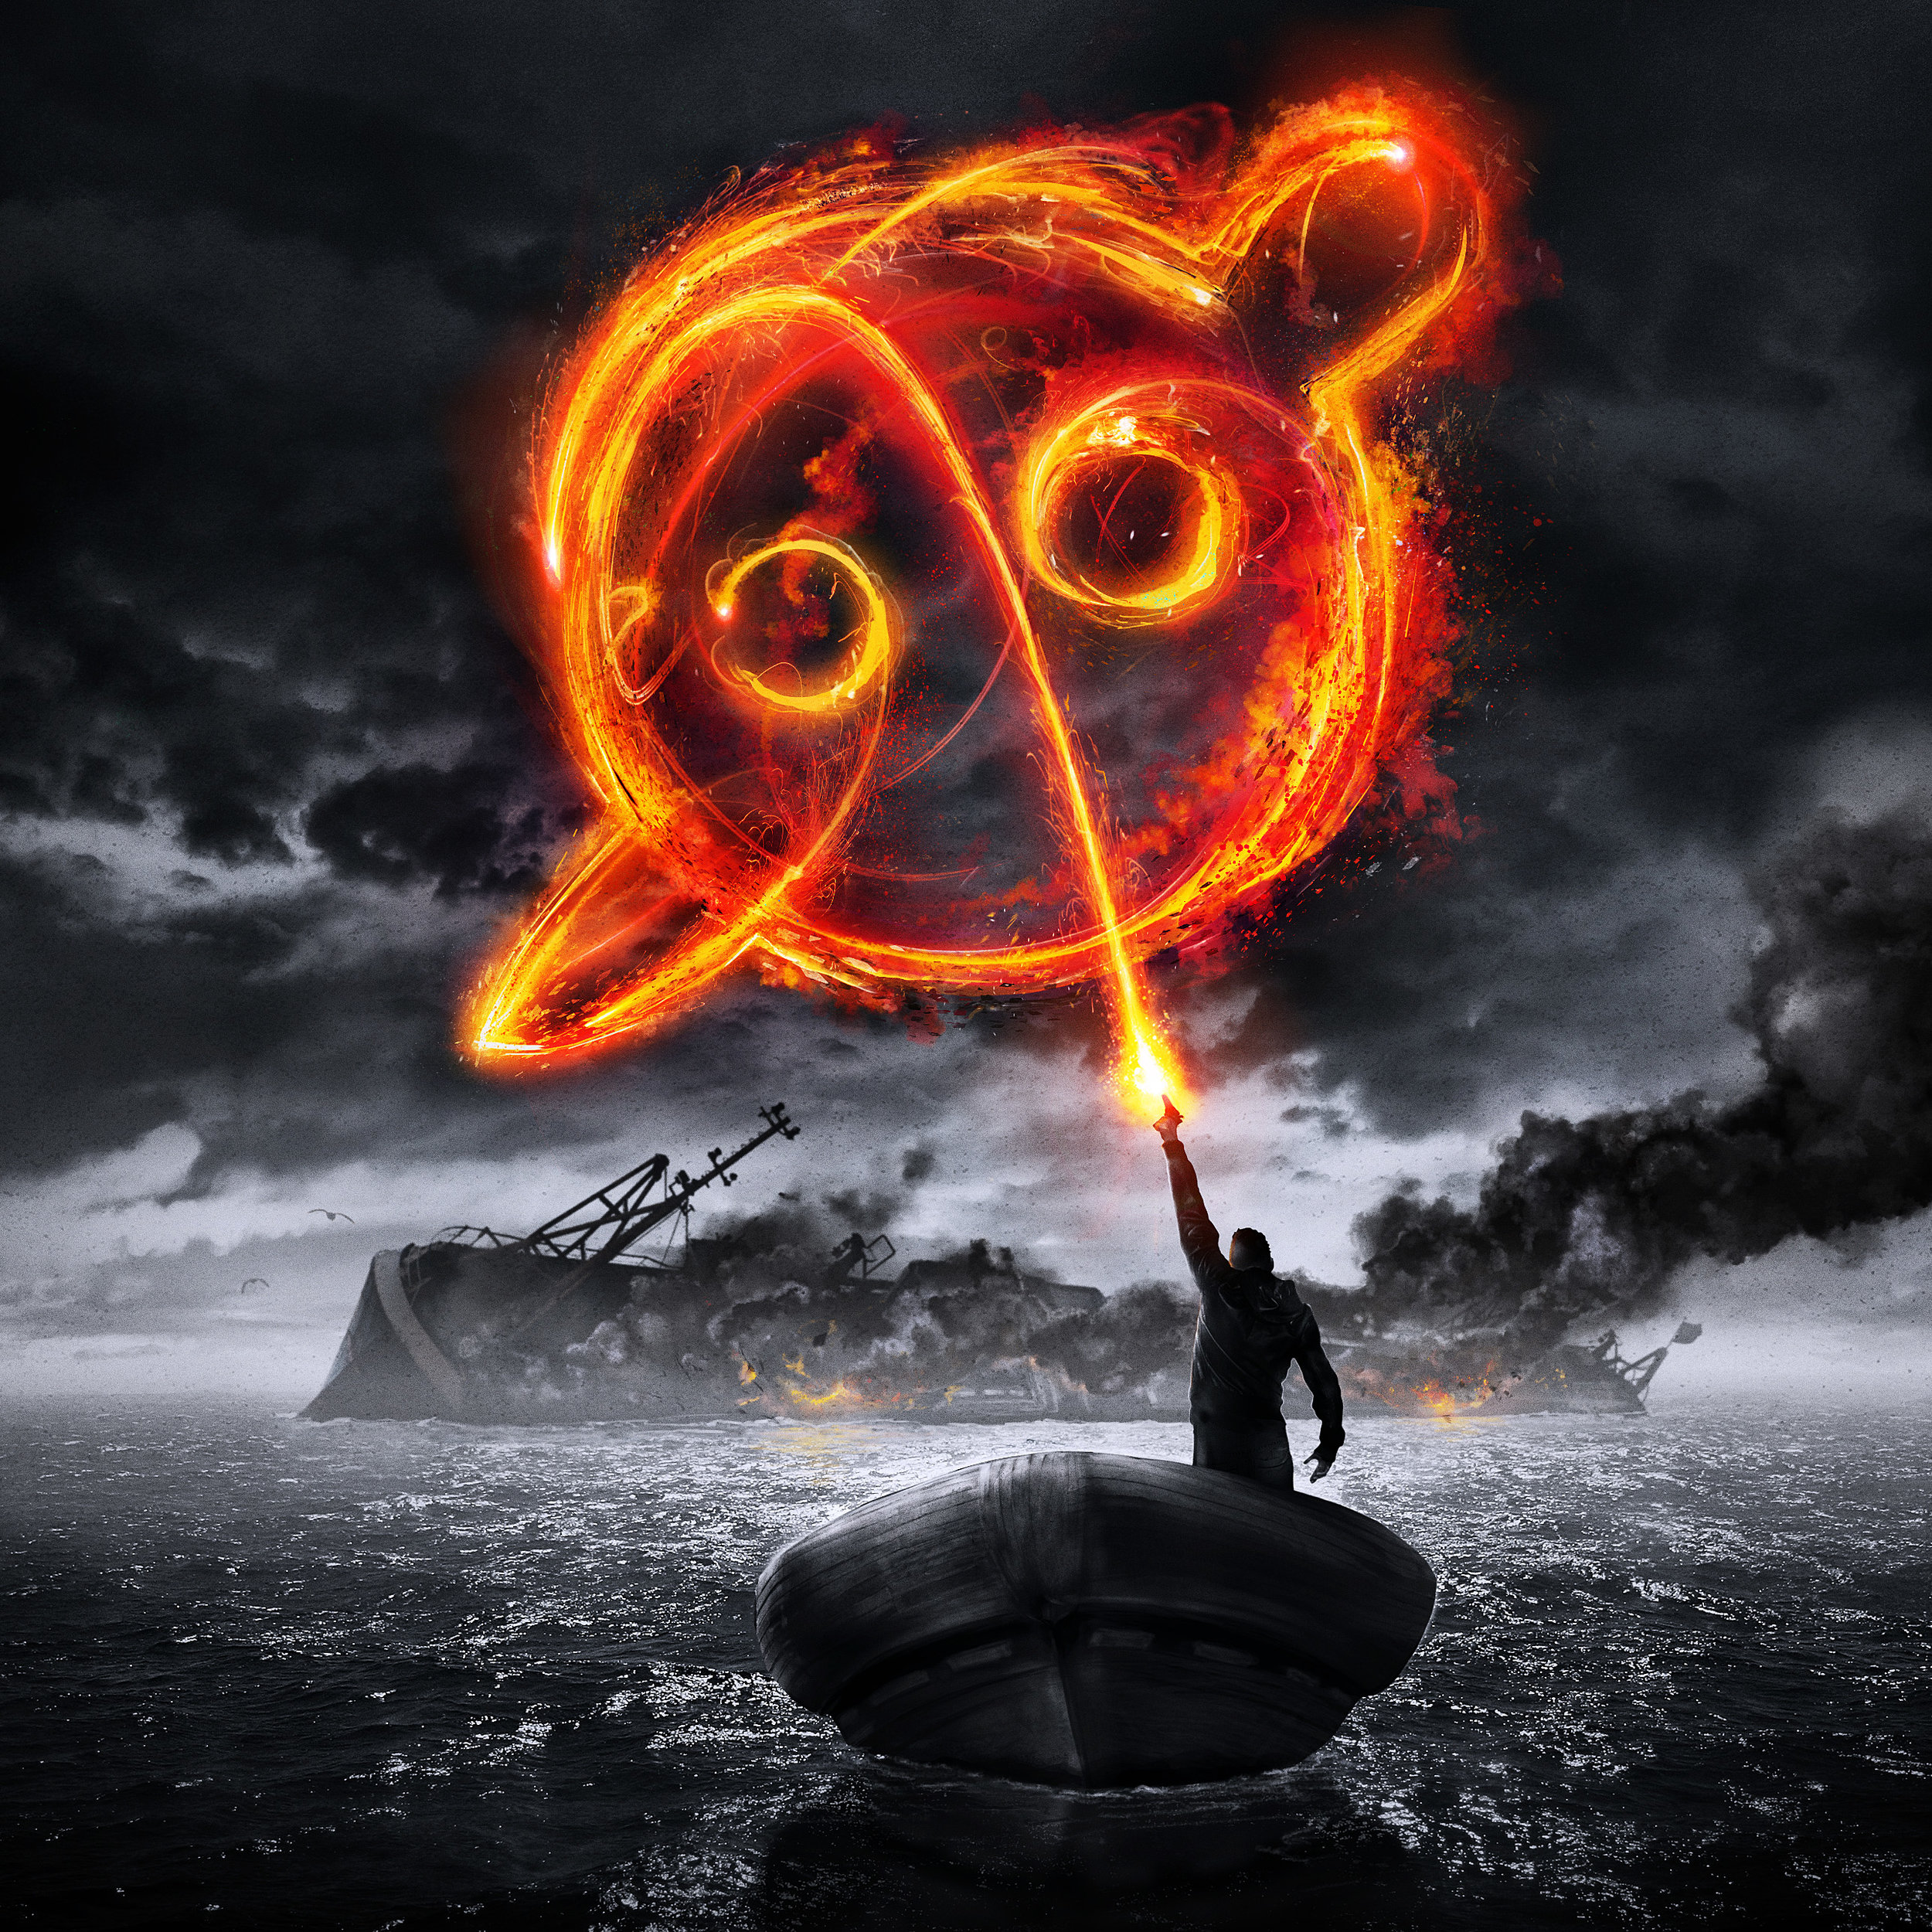 Knife Party, unreleased project